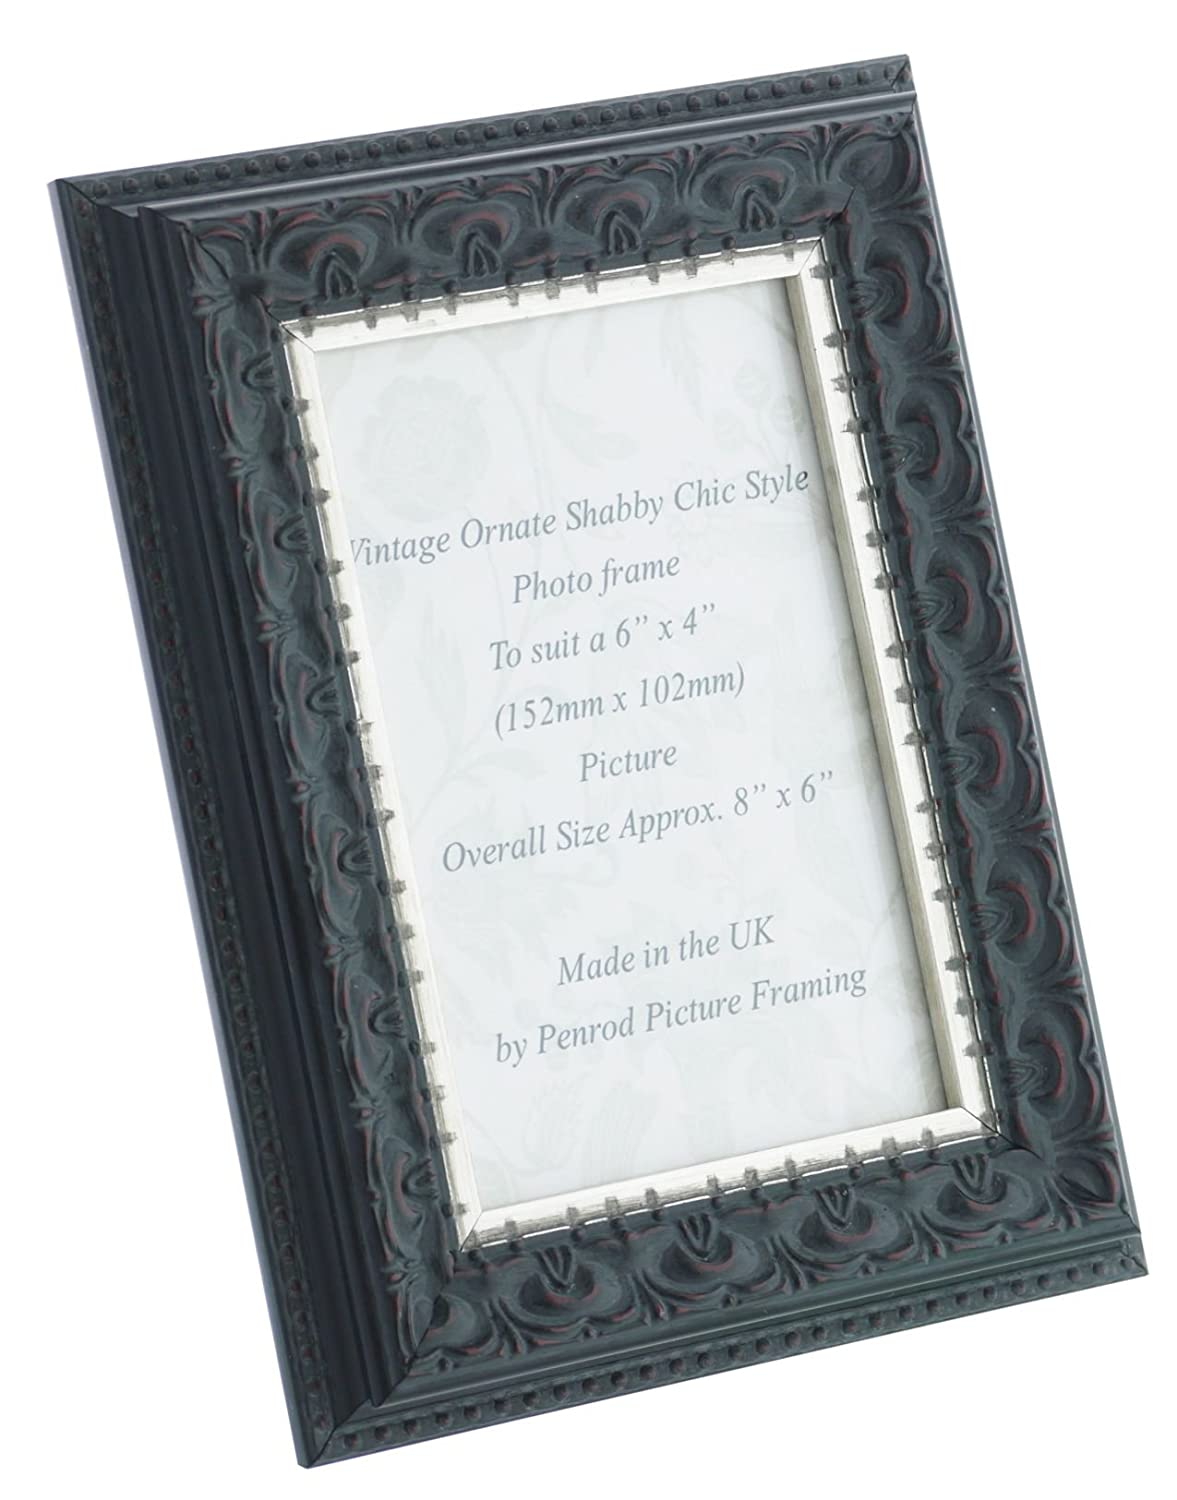 Penrod Picture Framing Handmade 6x4 inch Photo Frame. Ornate Shabby ...